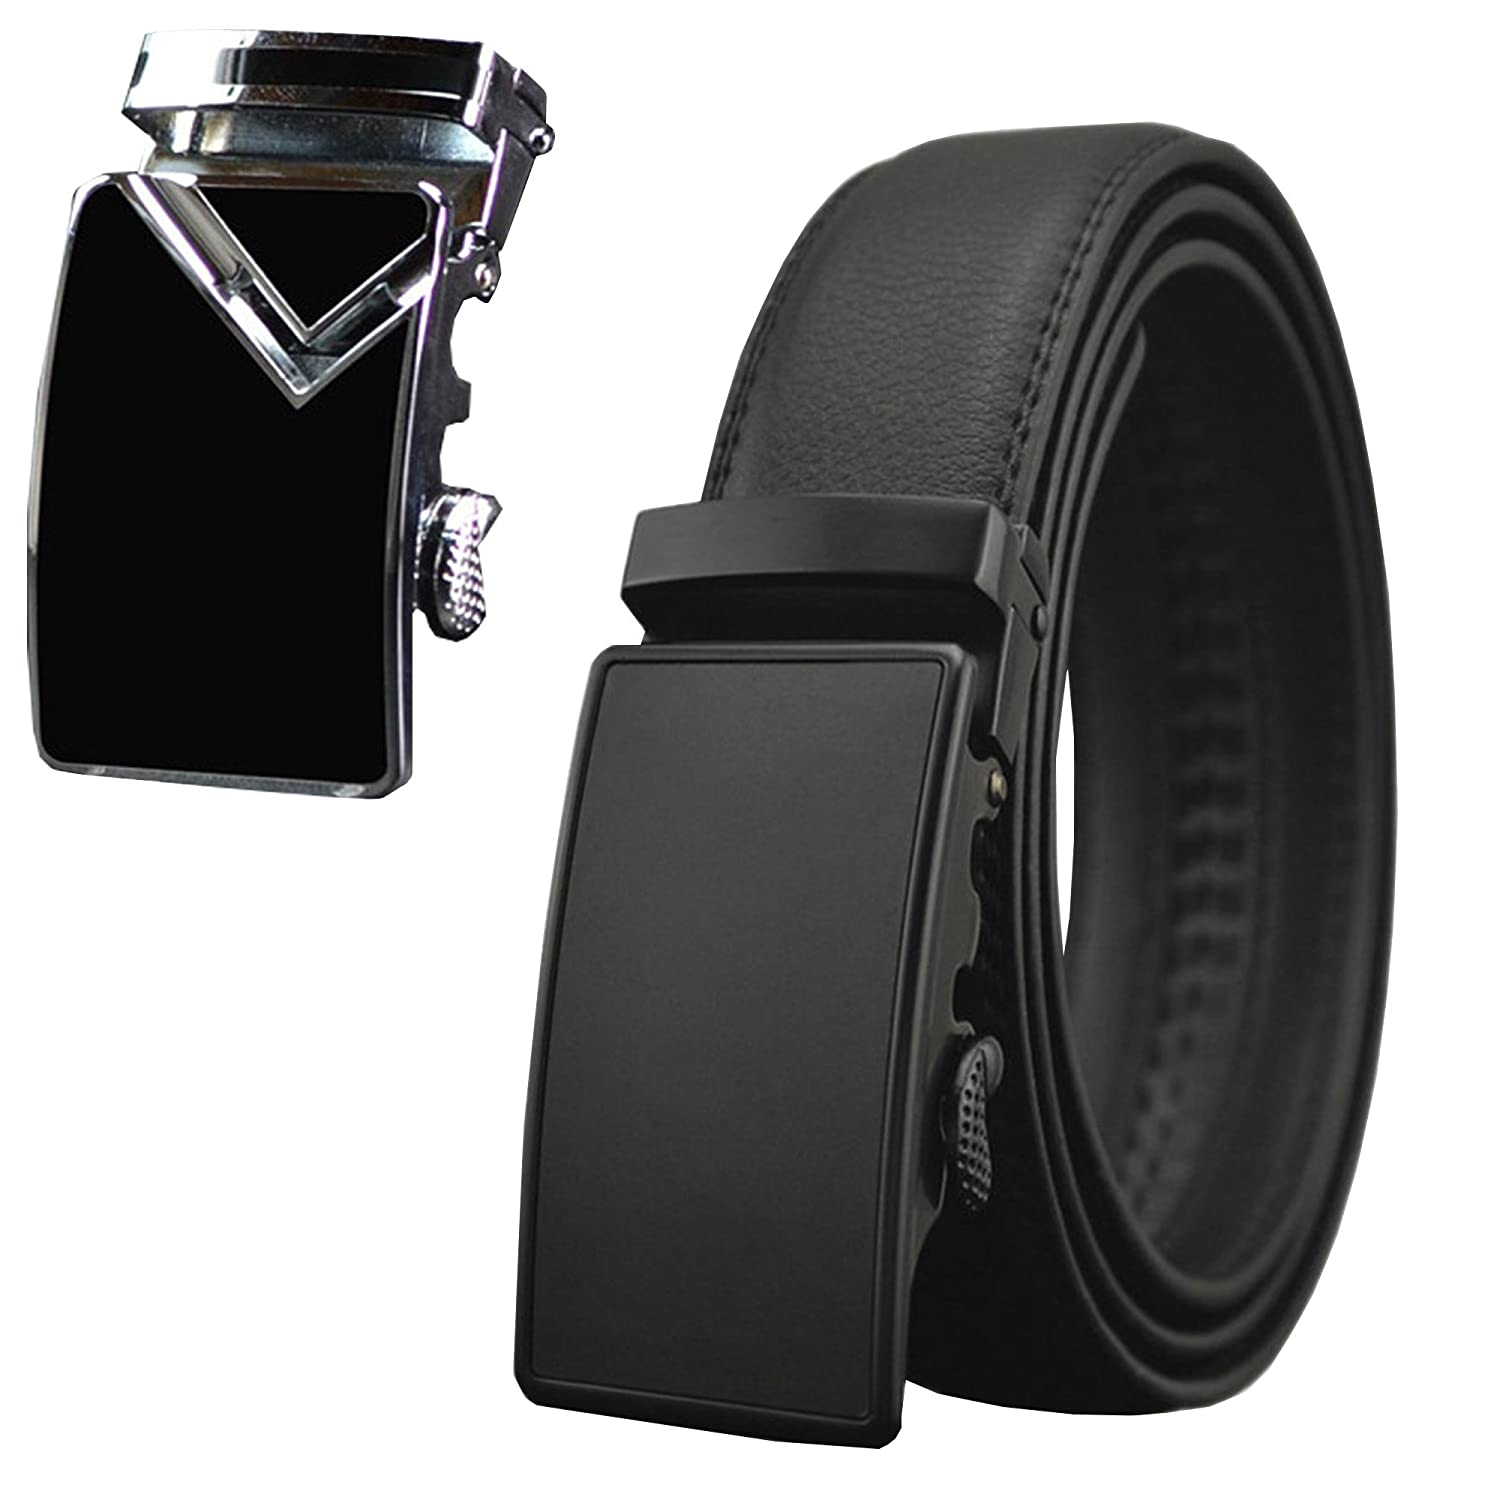 Men Leather Ratchet Automatic Buckle Dress Belt with Standby Buckle-Trim to Fit (Waist size 42-48''/length 130cm, Style C)